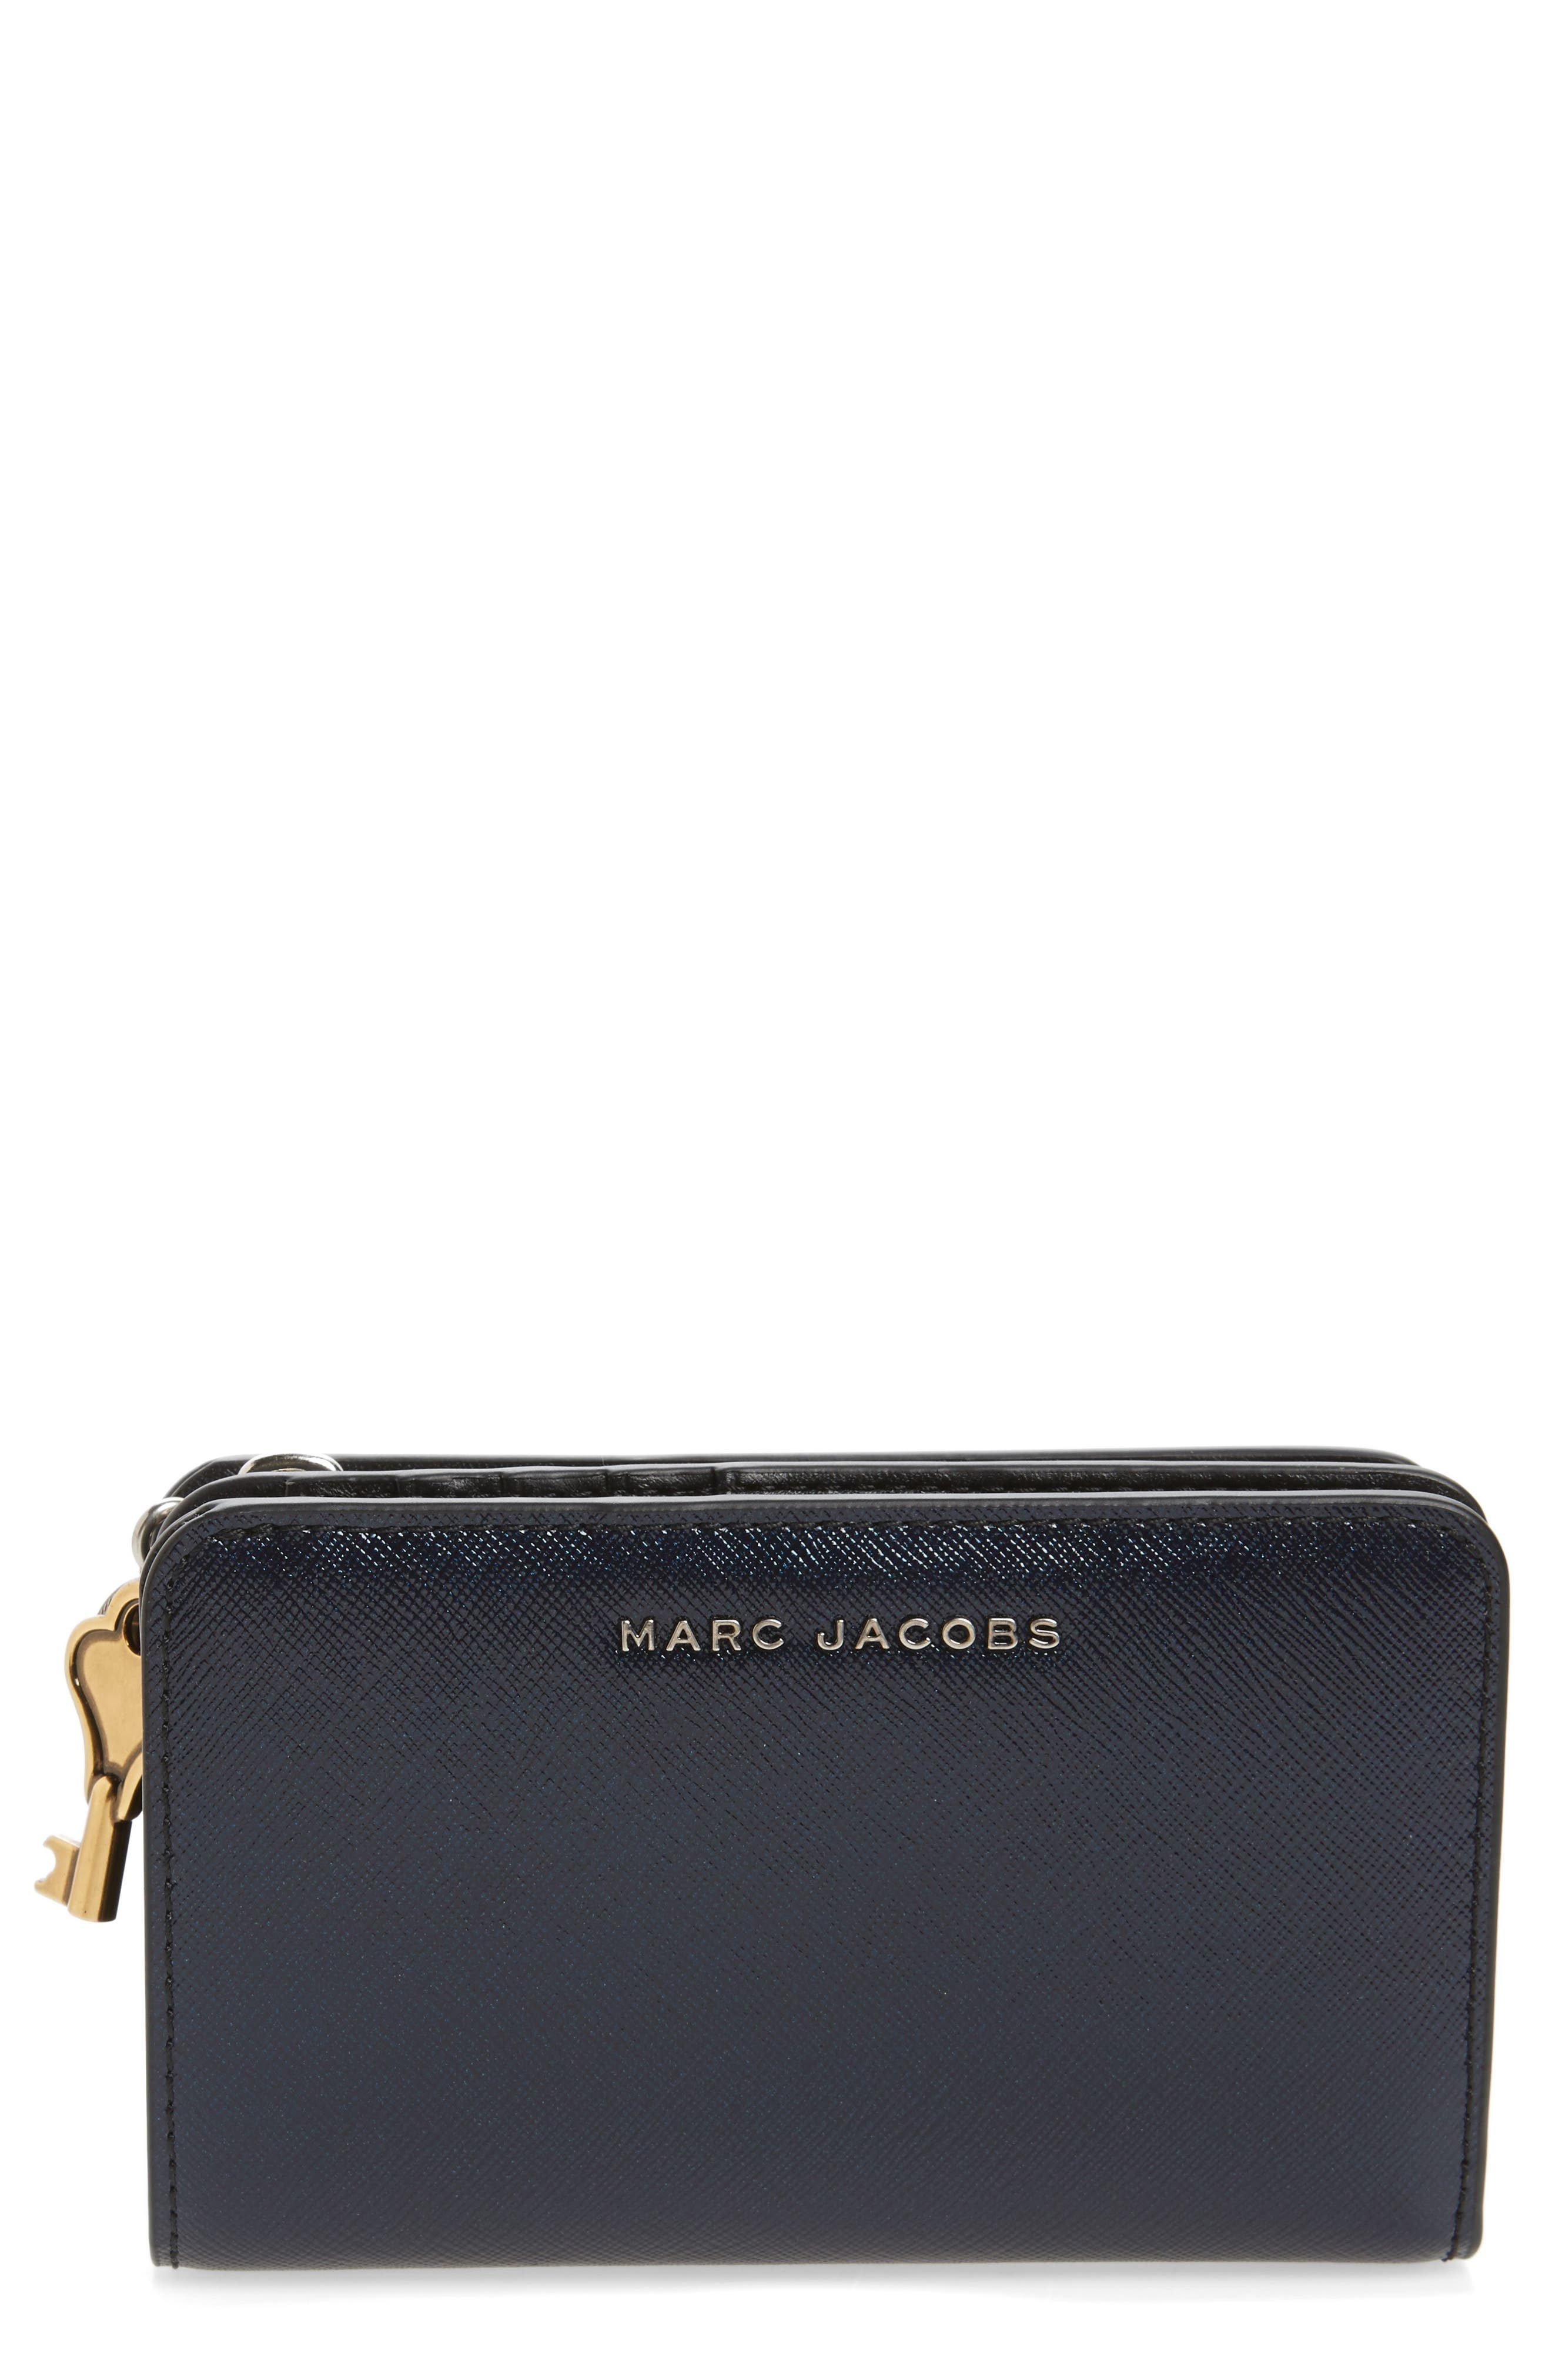 MARC JACOBS Saffiano Leather Compact Wallet, Main, color, 410